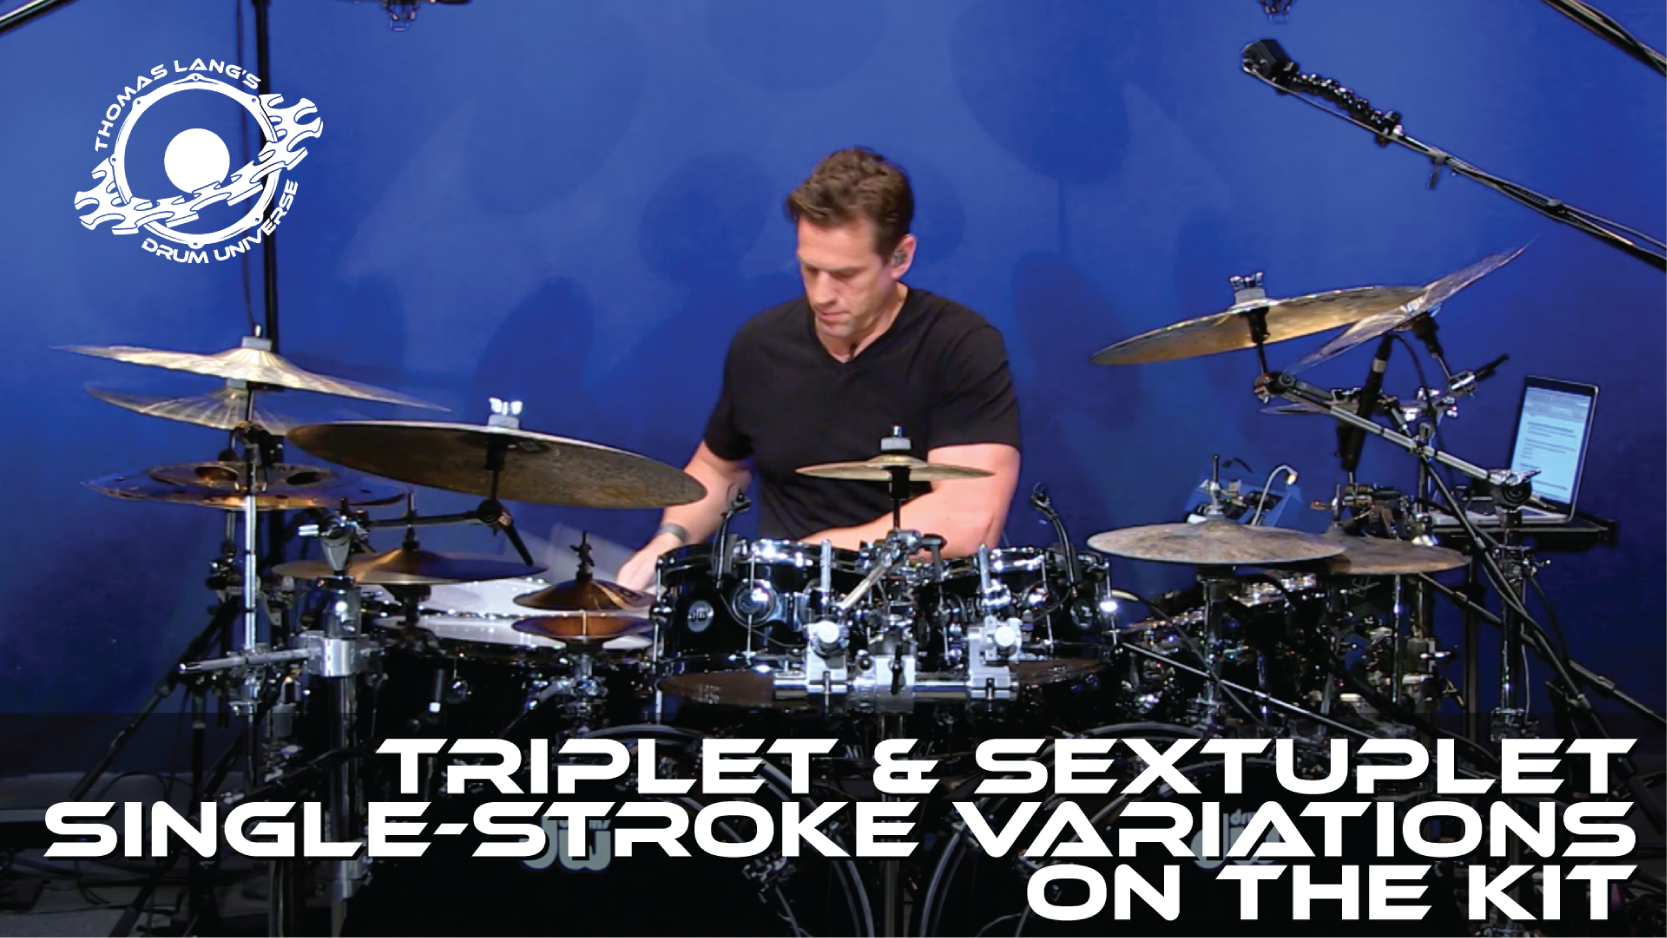 Triplet & Sextuplet Single-Stroke Variations on the Kit